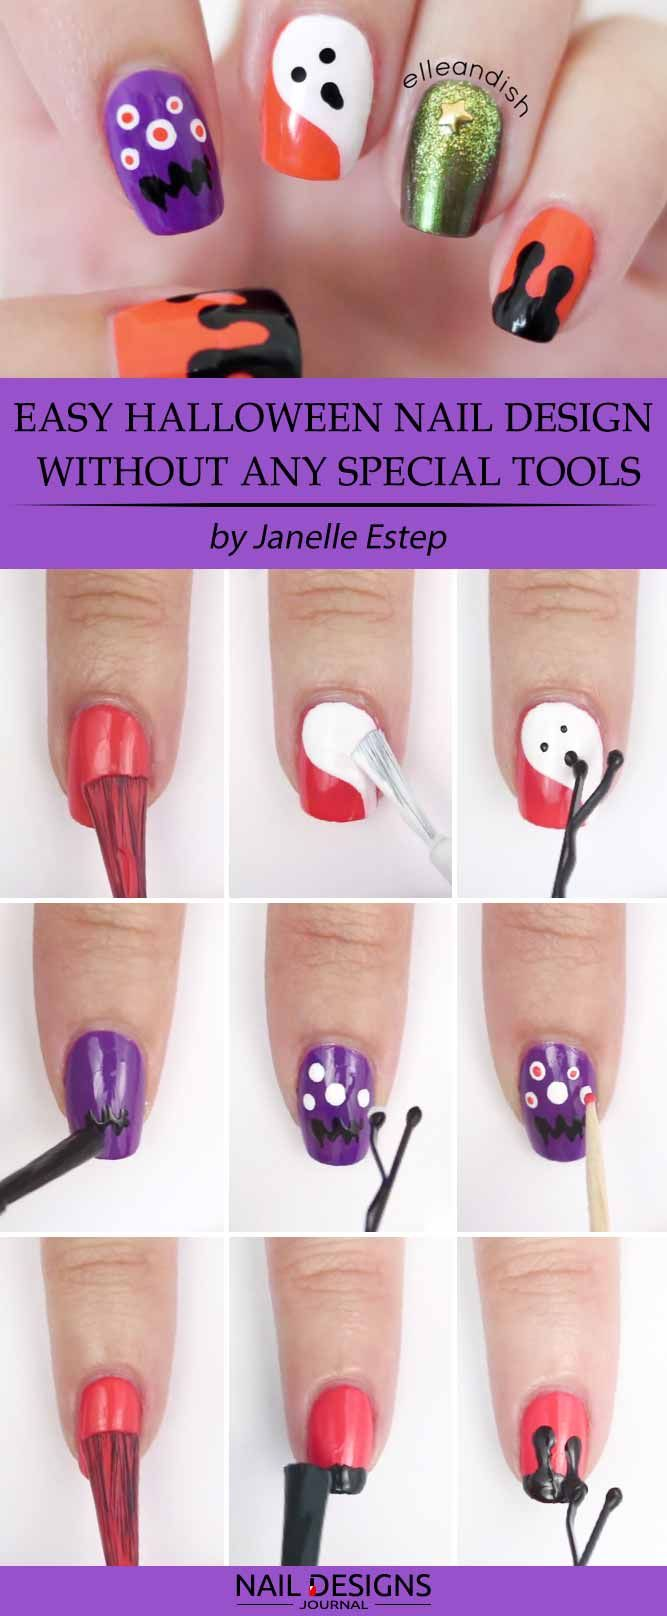 7 Halloween Nail Art Ideas Tutorials For Creative Beginners